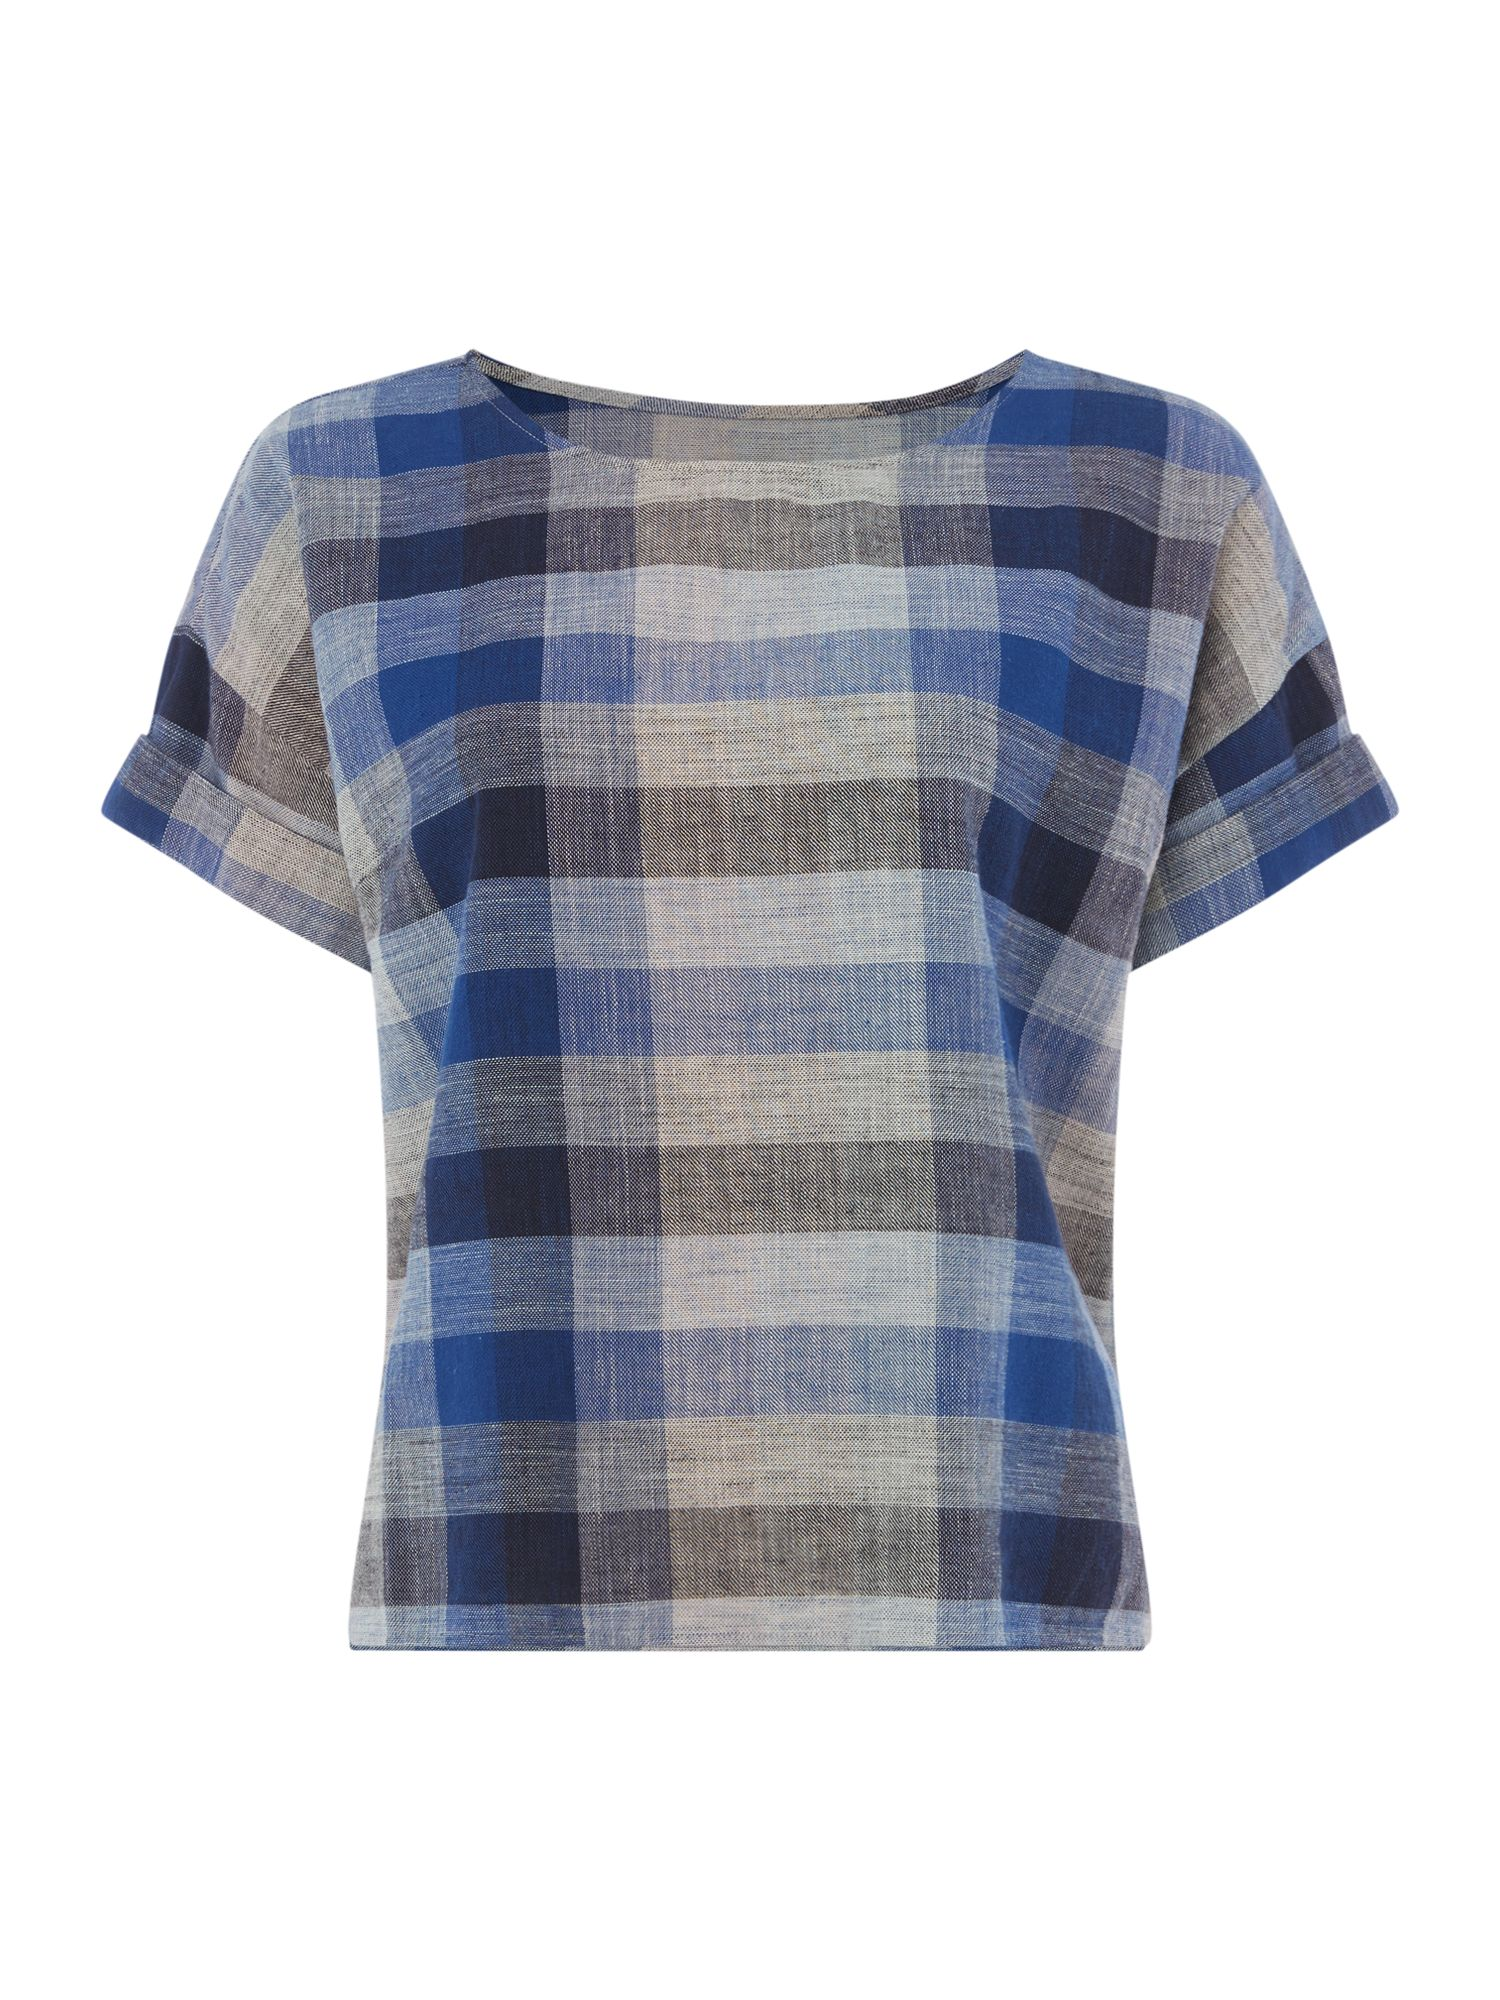 Maison De Nimes Picnic Check Top, Blue